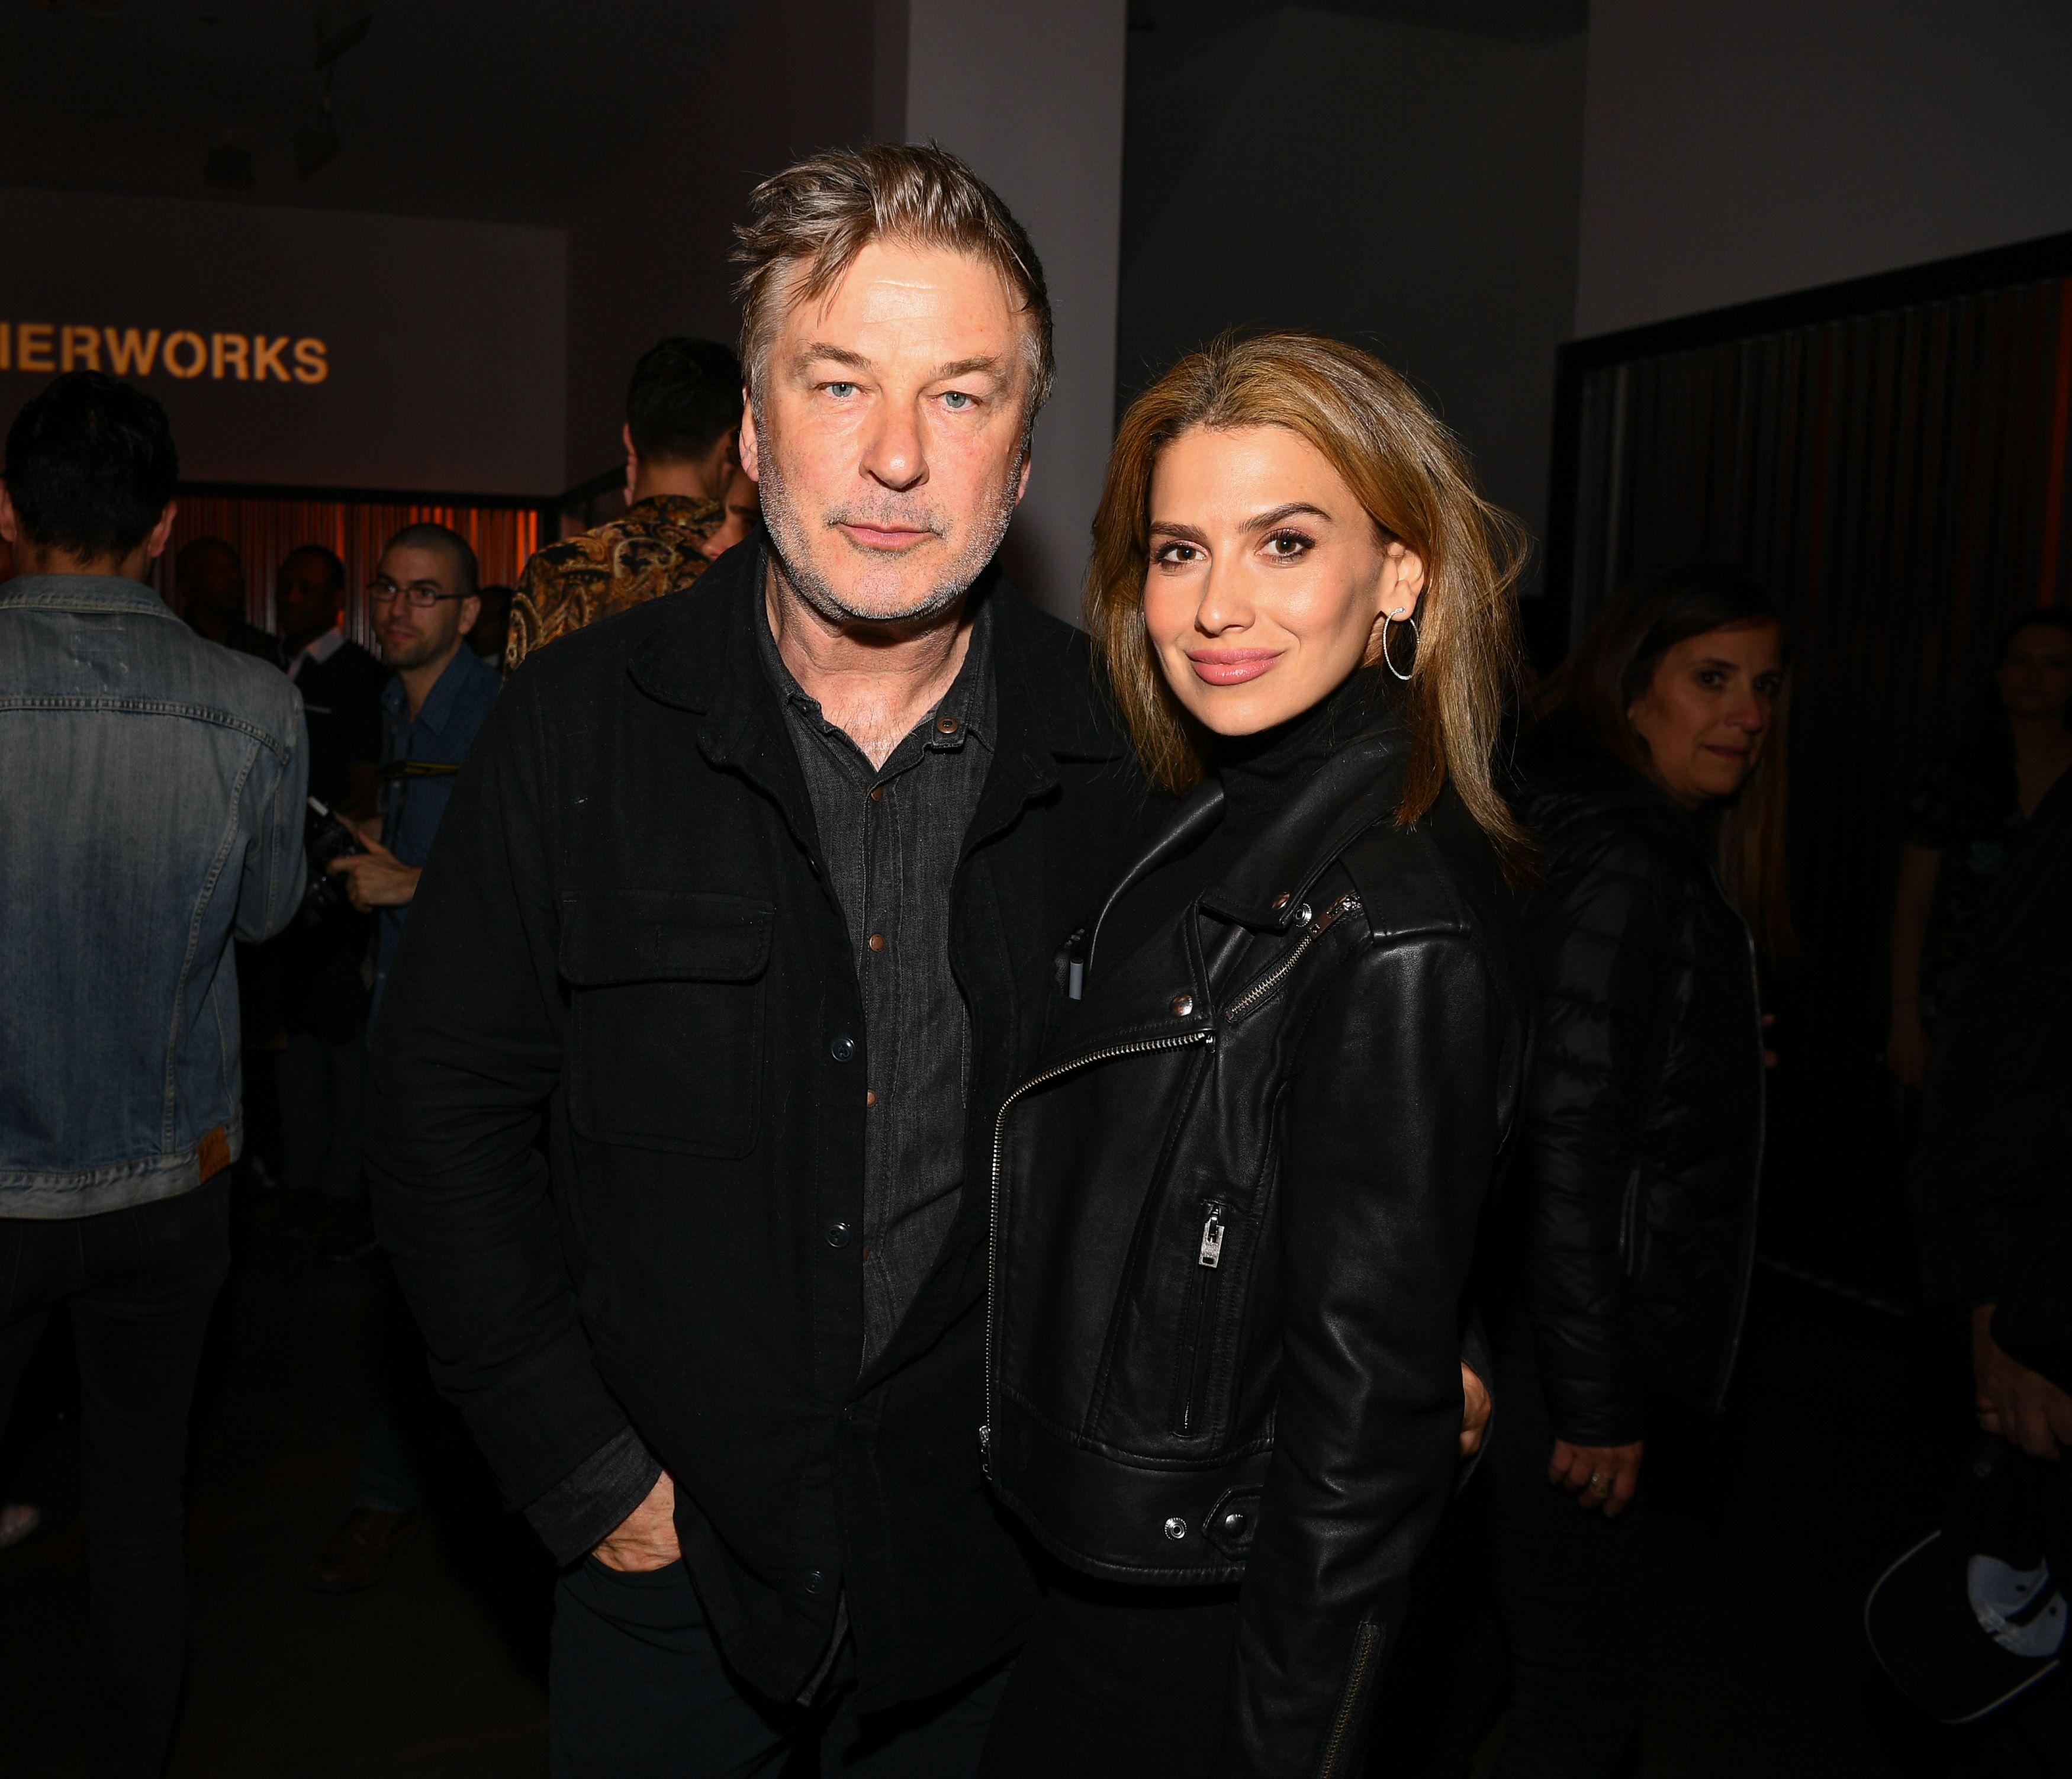 Alec and Hilaria Baldwin at the Tribeca Film Festival After-Party in 2019, in New York City | Source: Getty Images